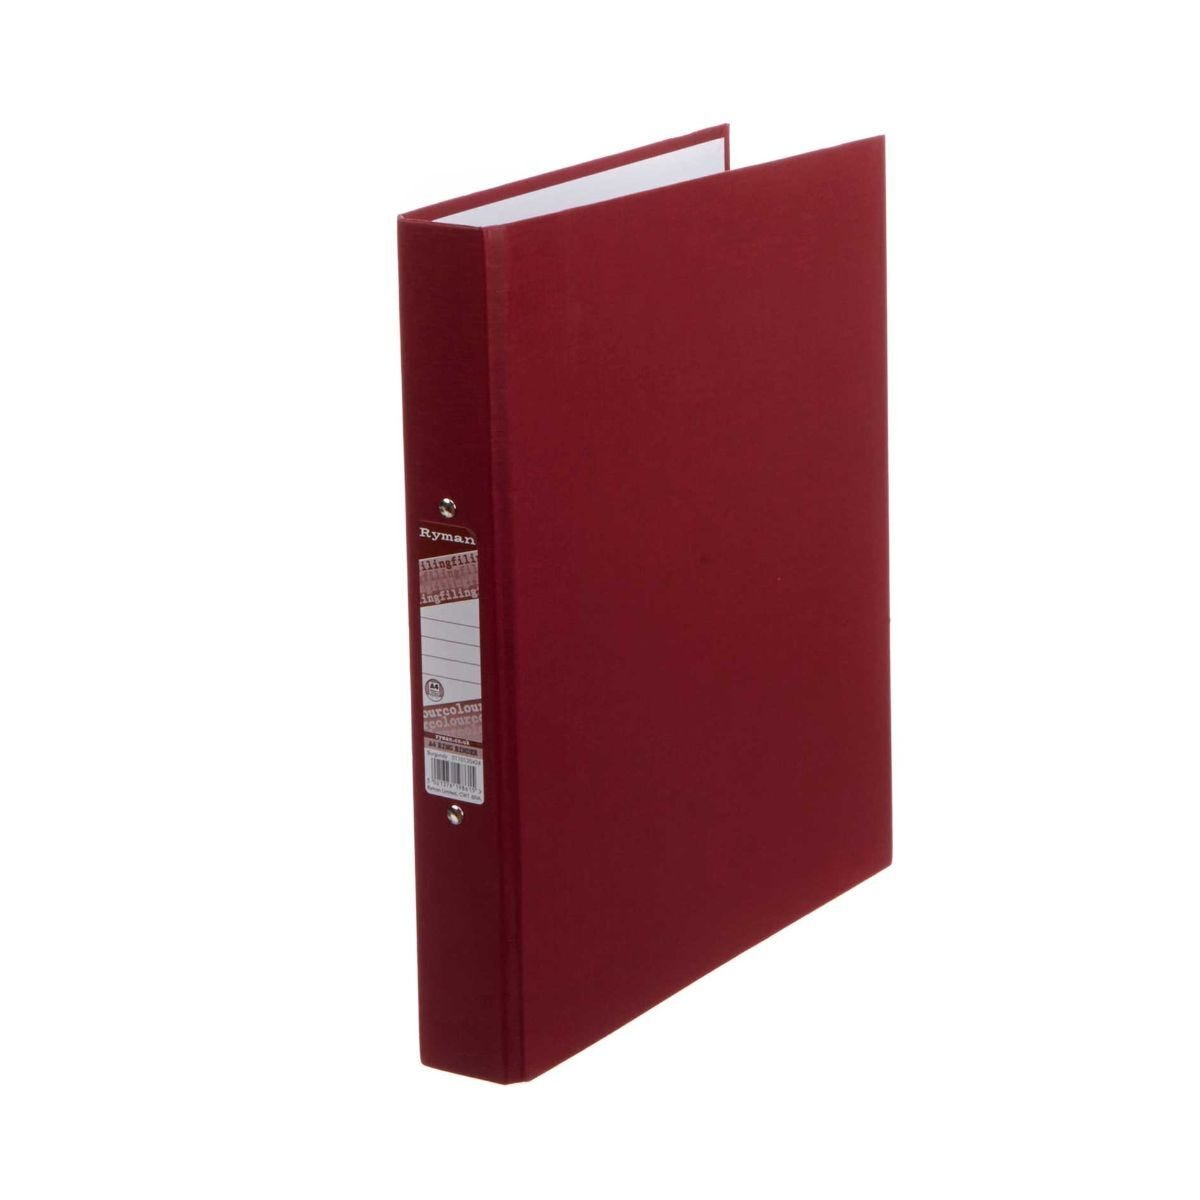 Ryman Colour Ringbinder A4 2-Ring Pack of 10 Burgundy